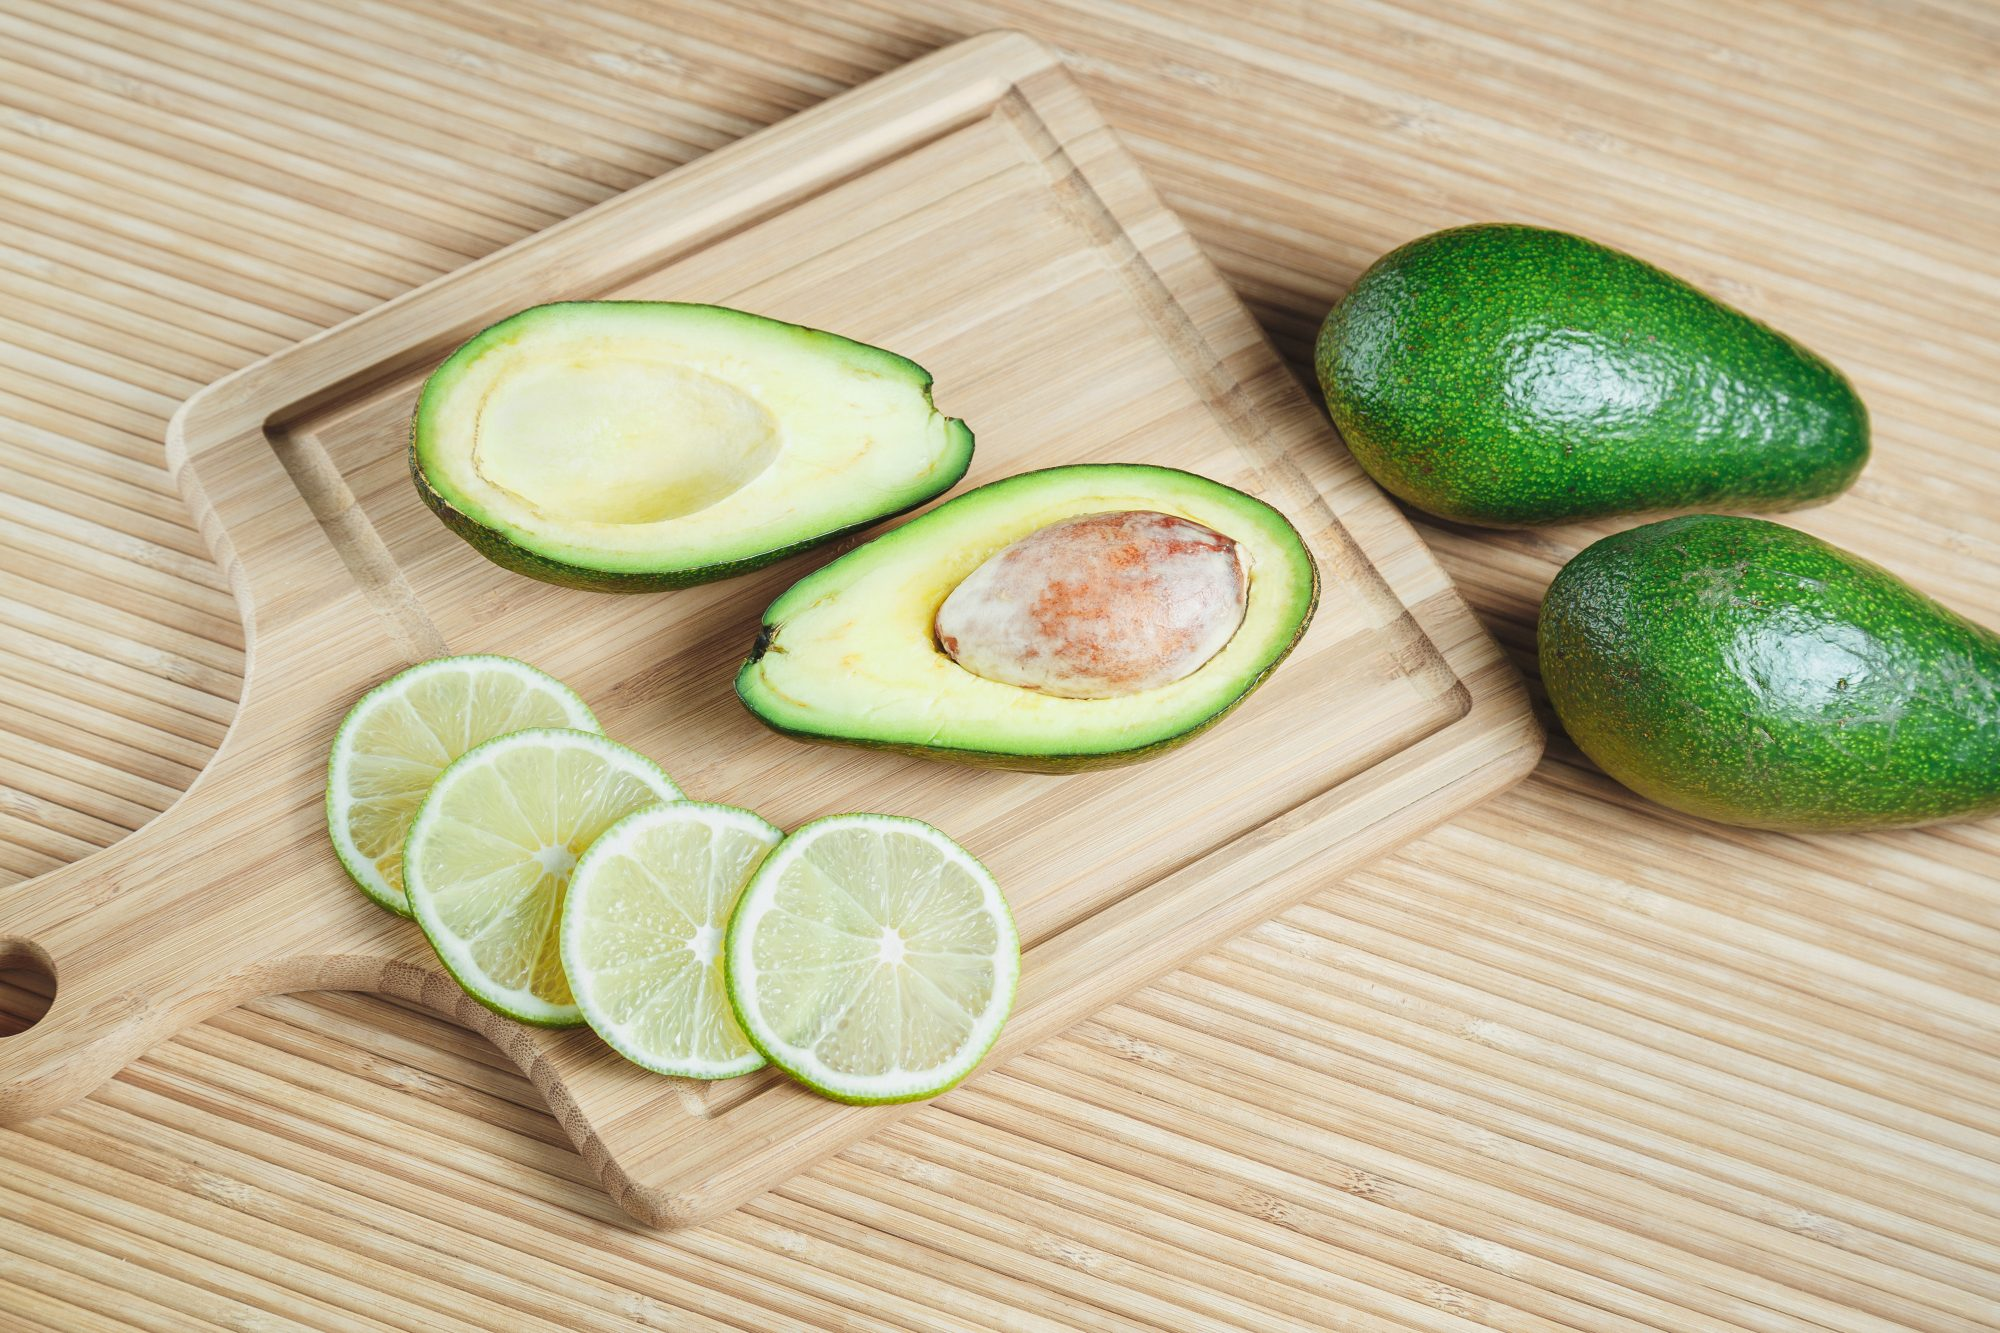 6-broiling-cooking-method-lime-avocado